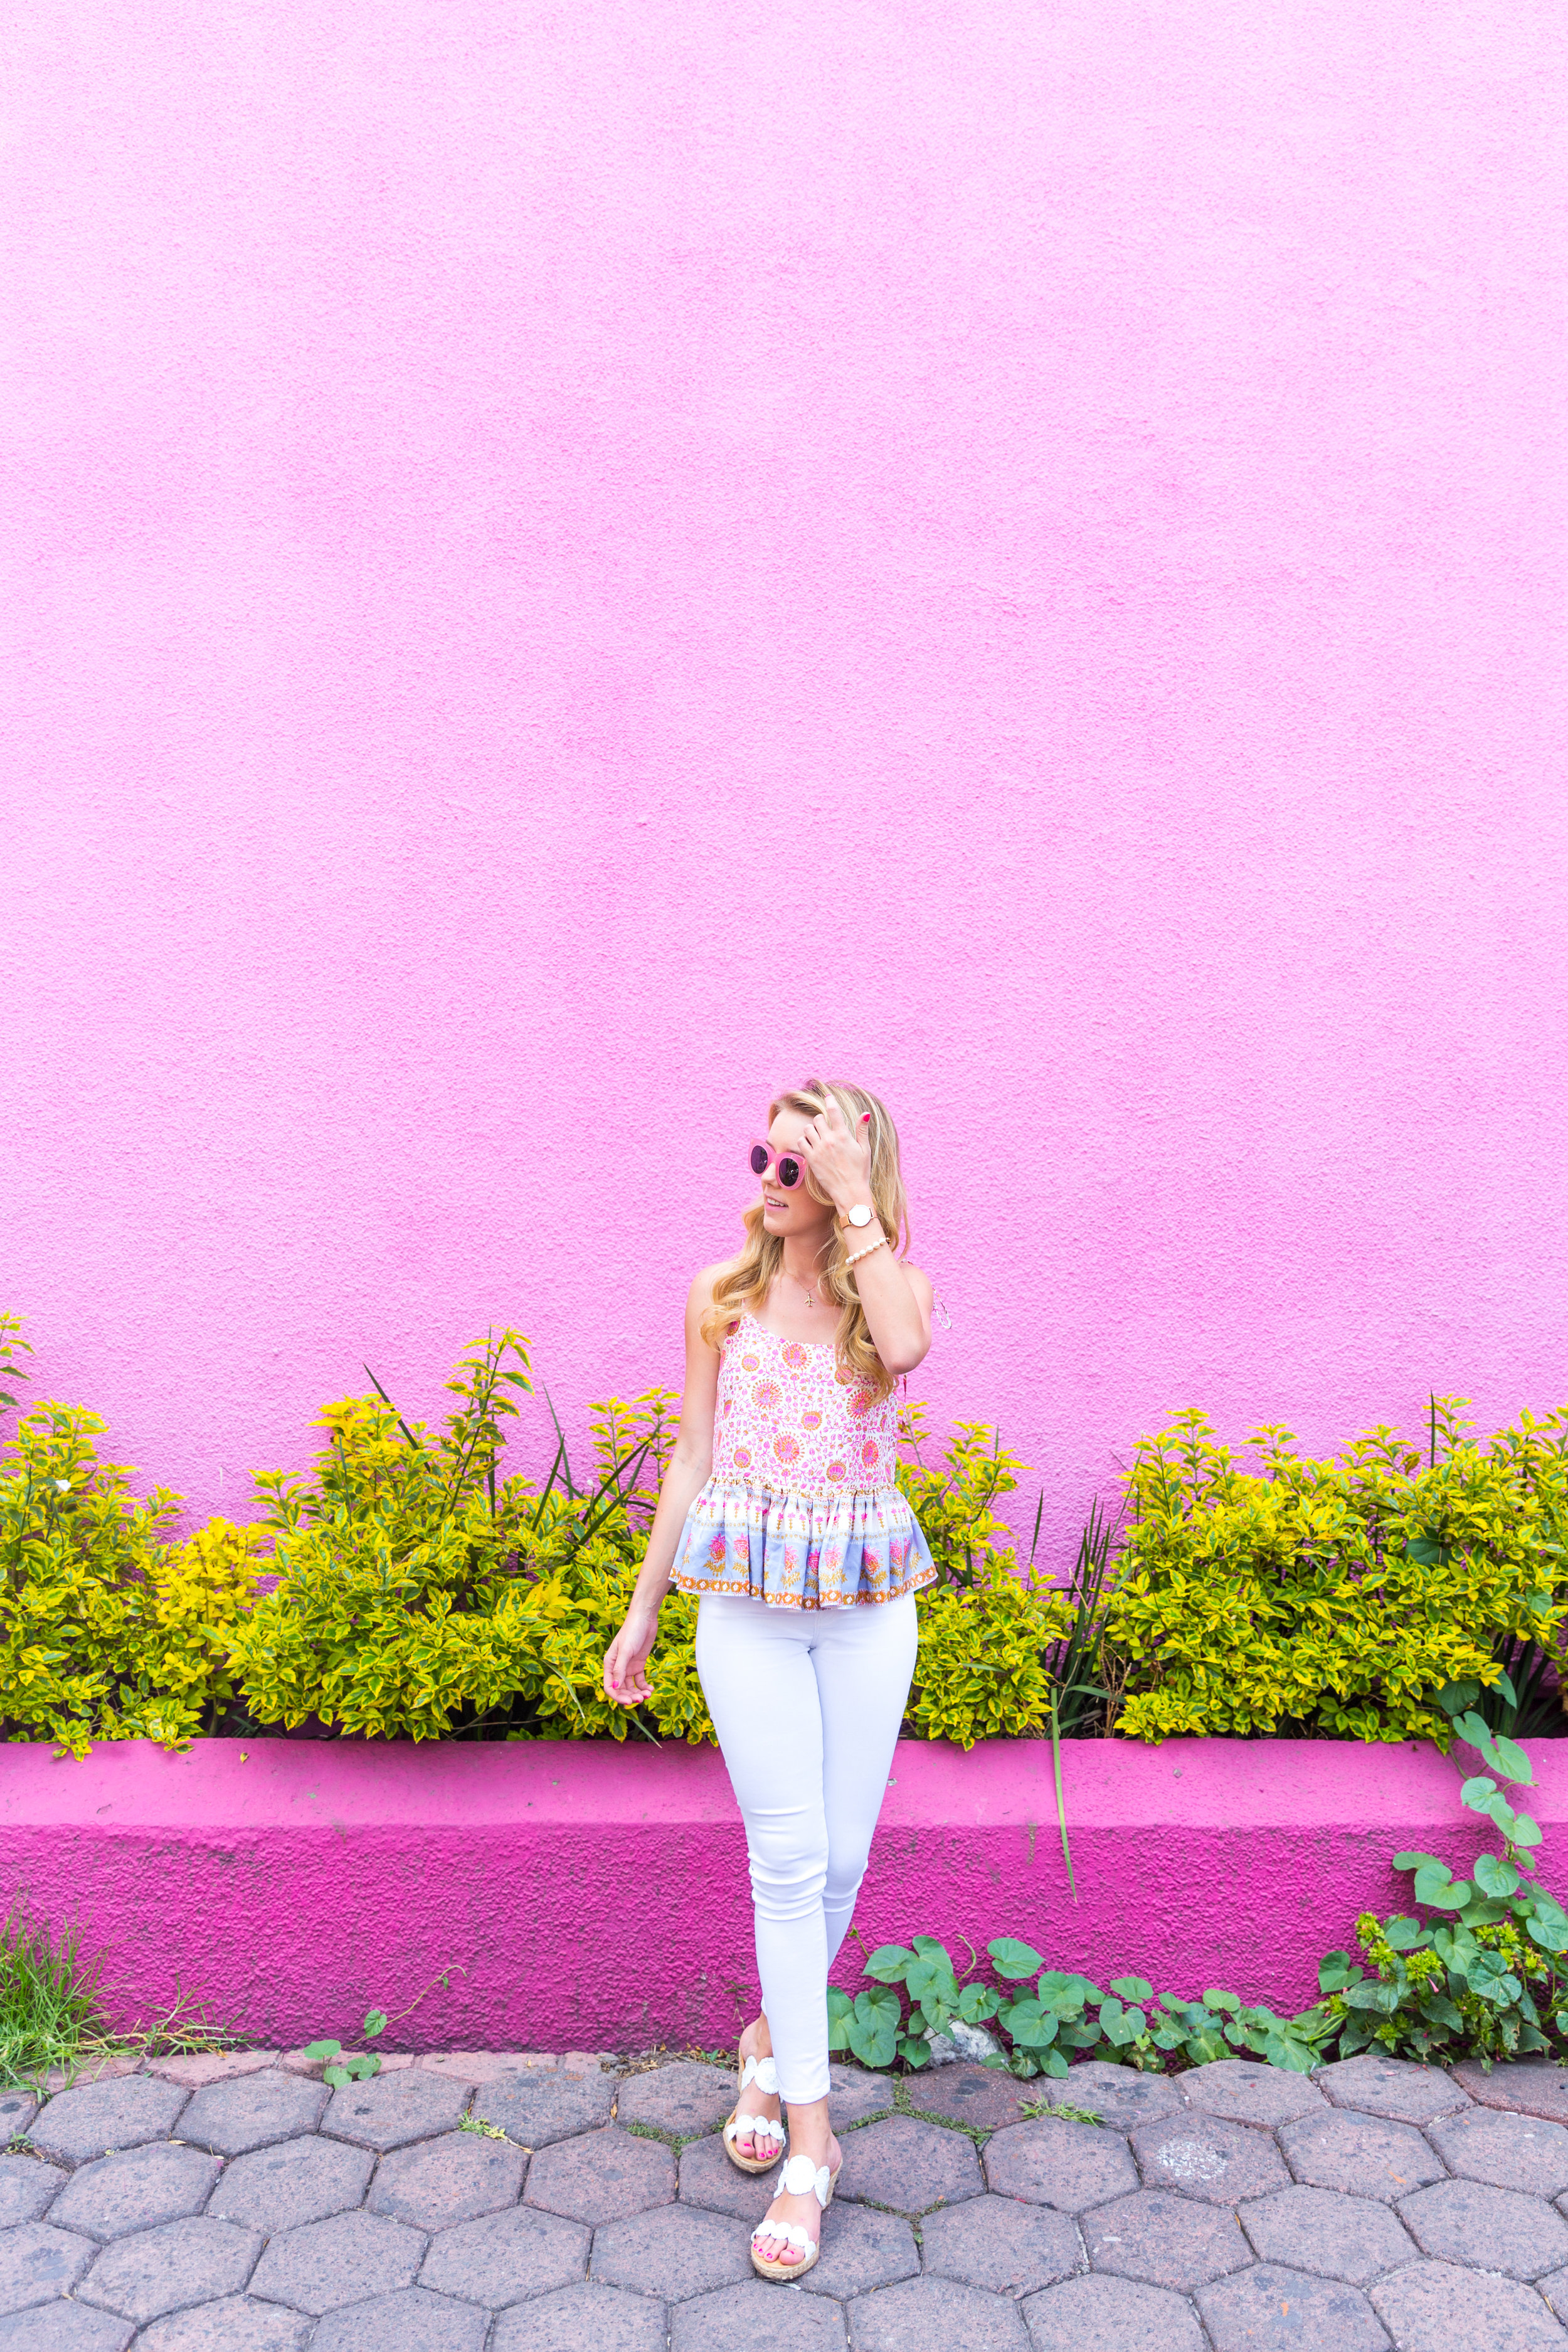 Mexico City Pink Wall Summer Outfit White Jeans Peplum Cami-4.jpg